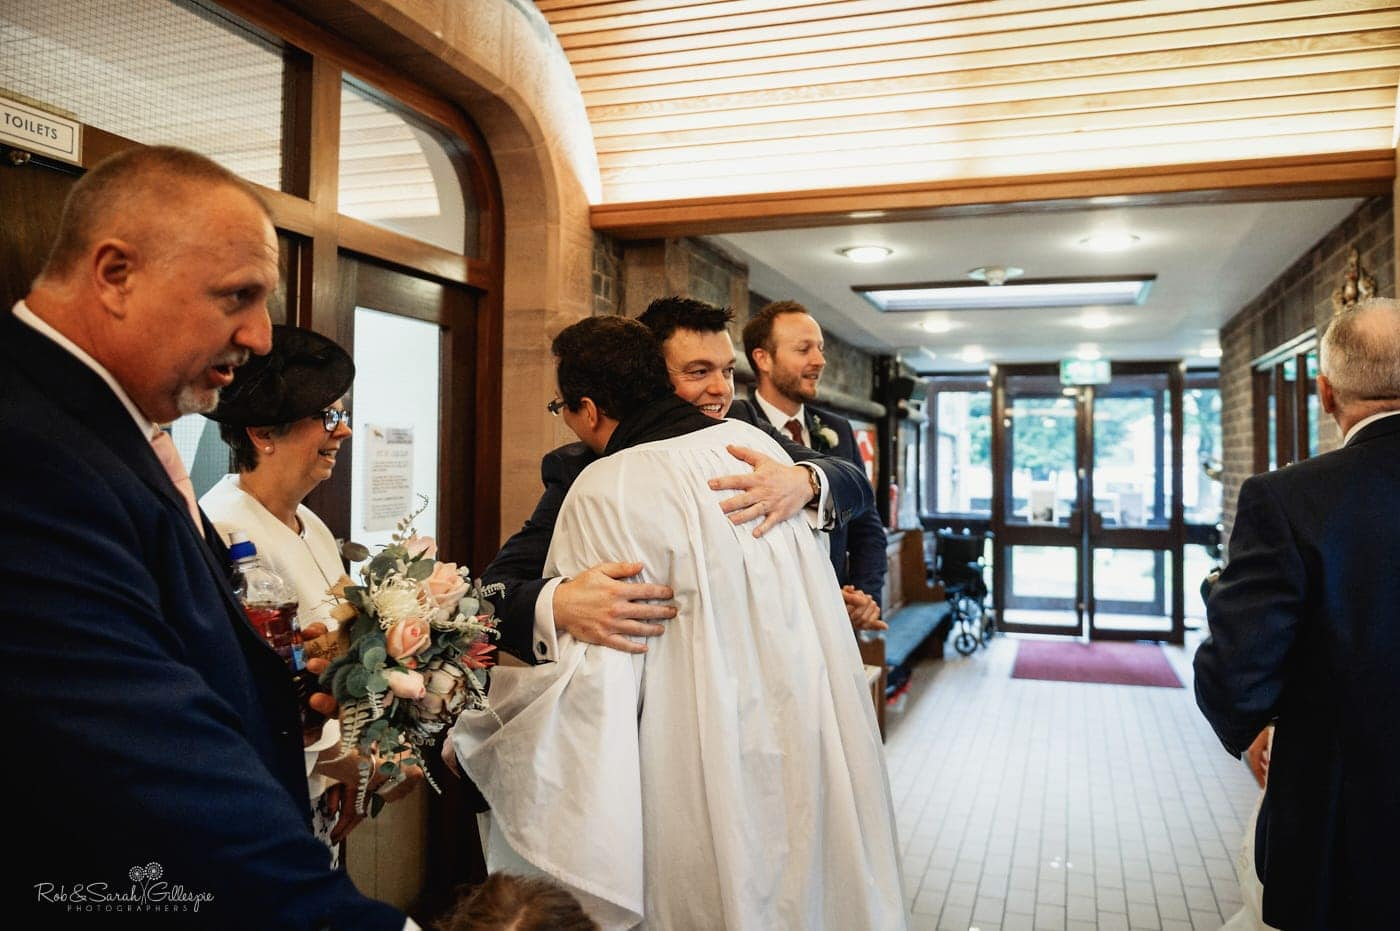 Groom hugs vicar afte small church wedding